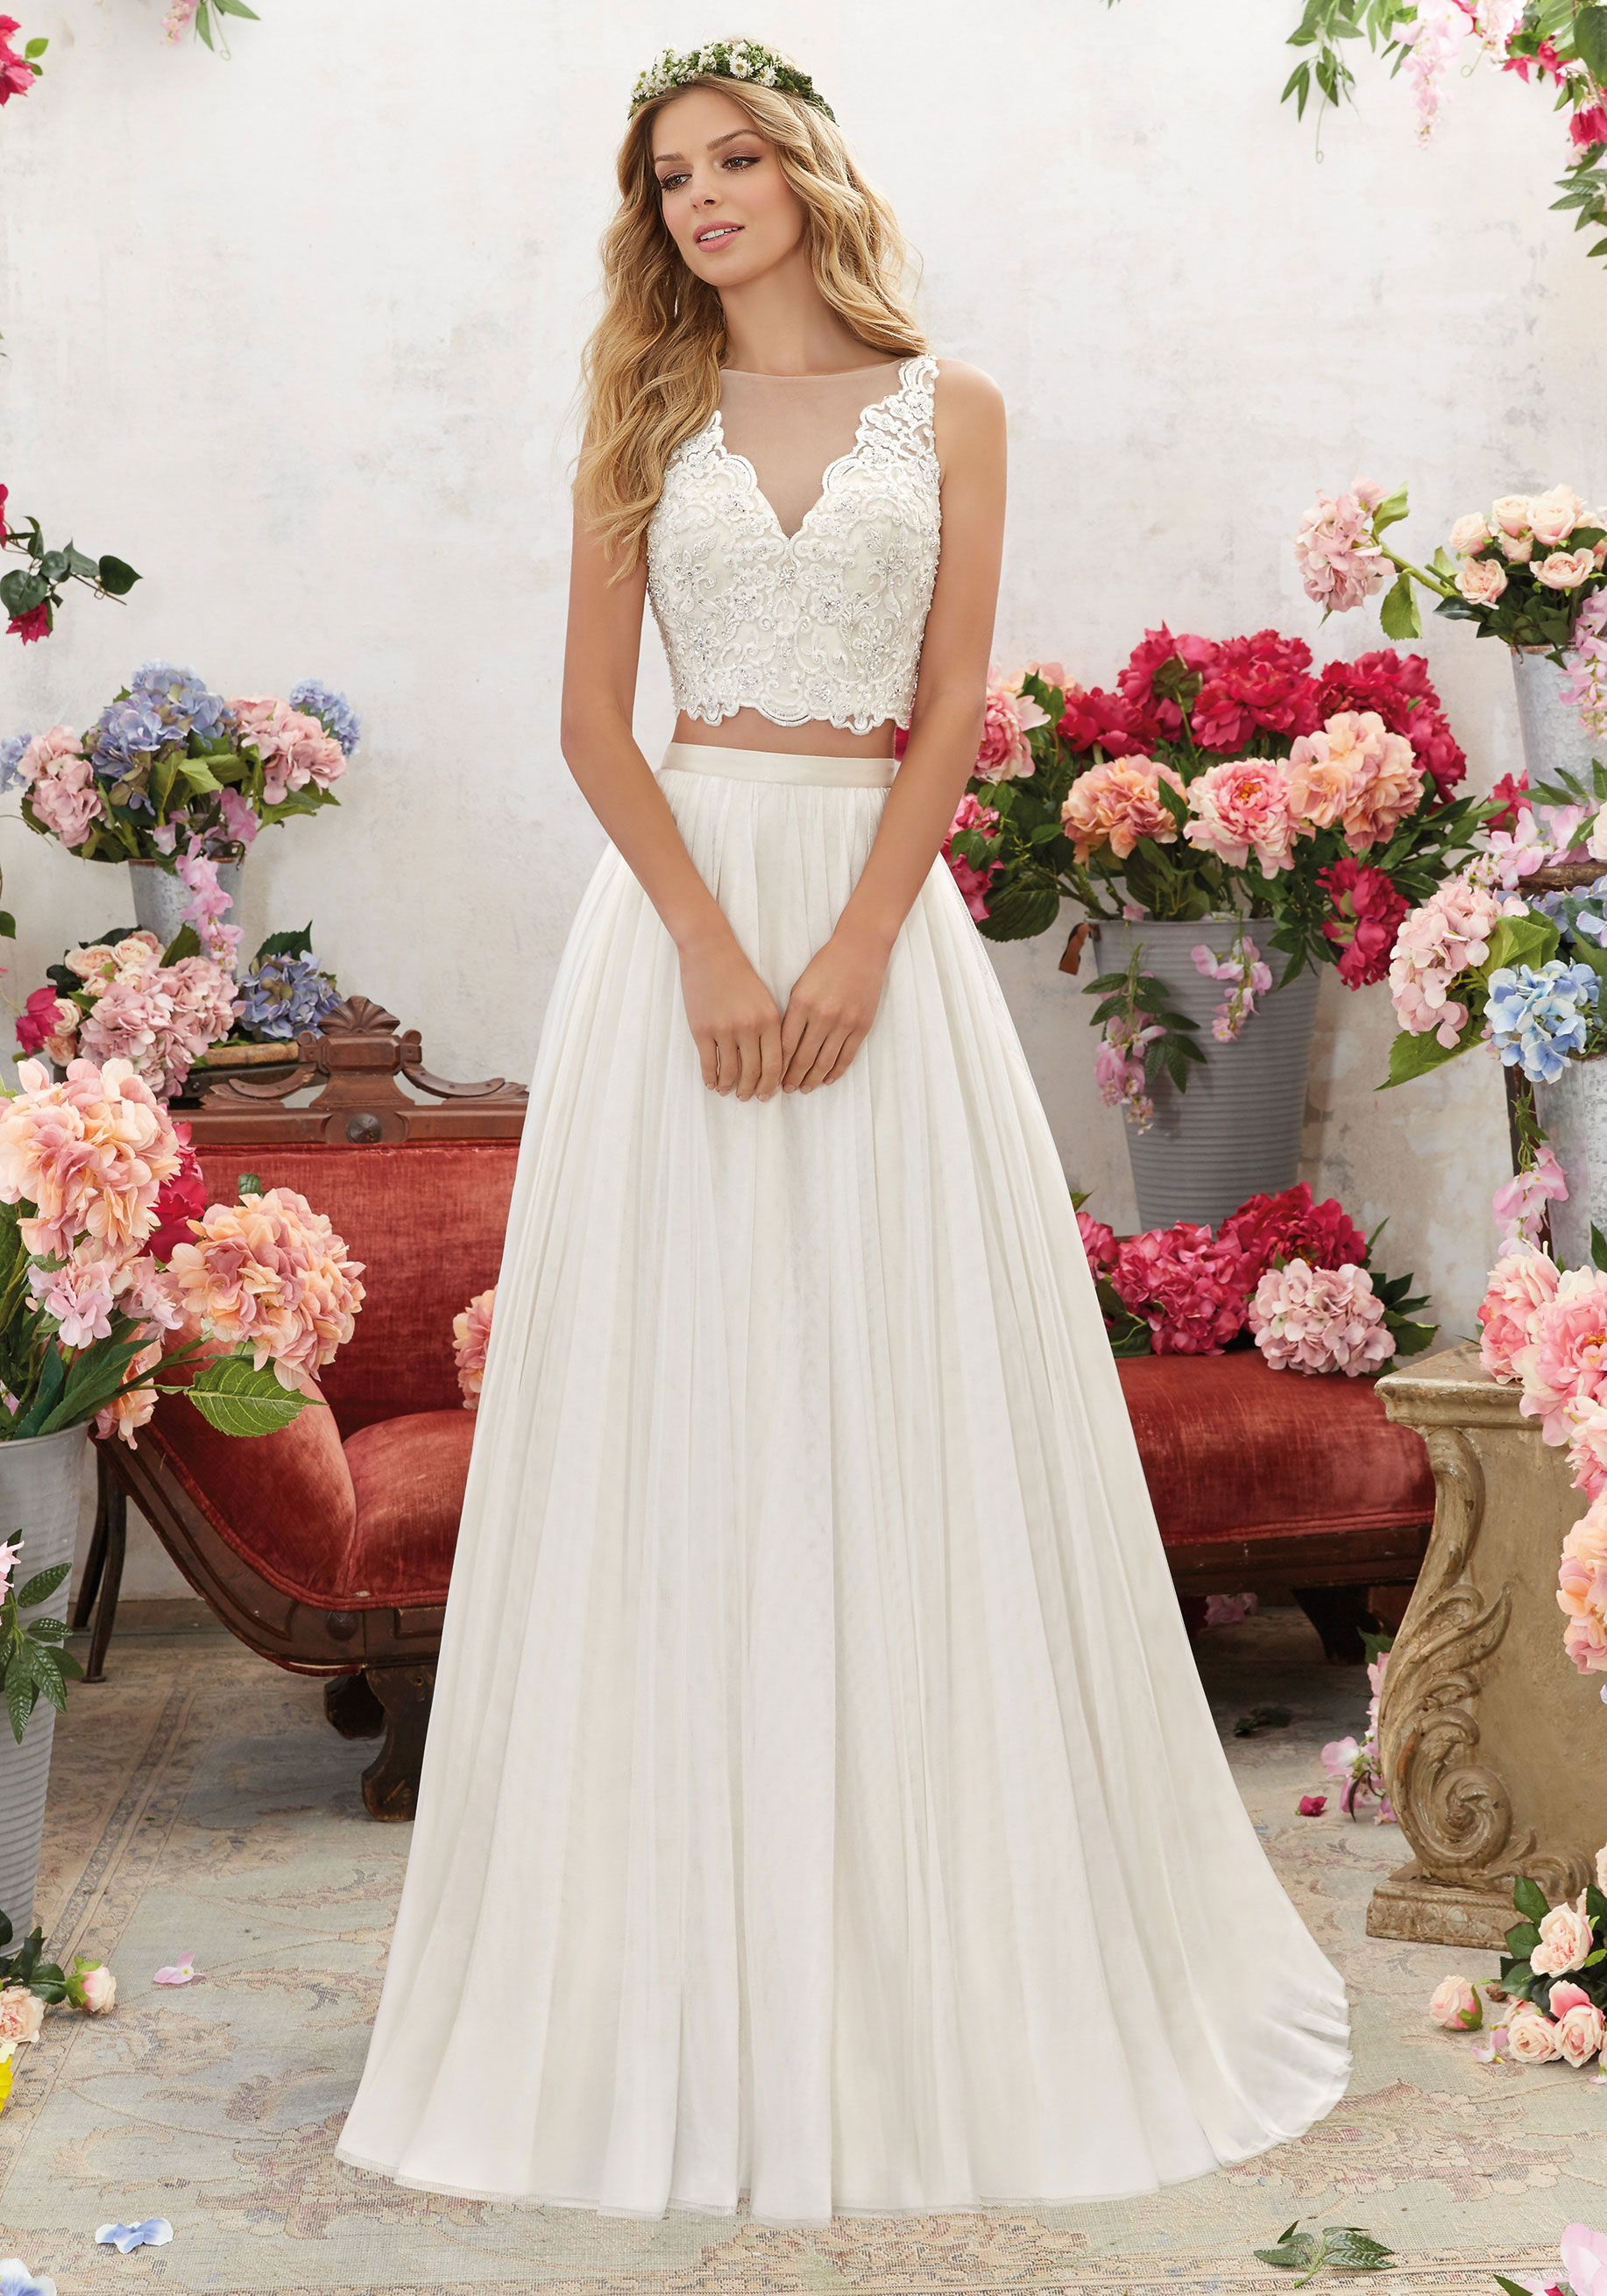 Perfect for the boho bride this twopiece wedding dress features a